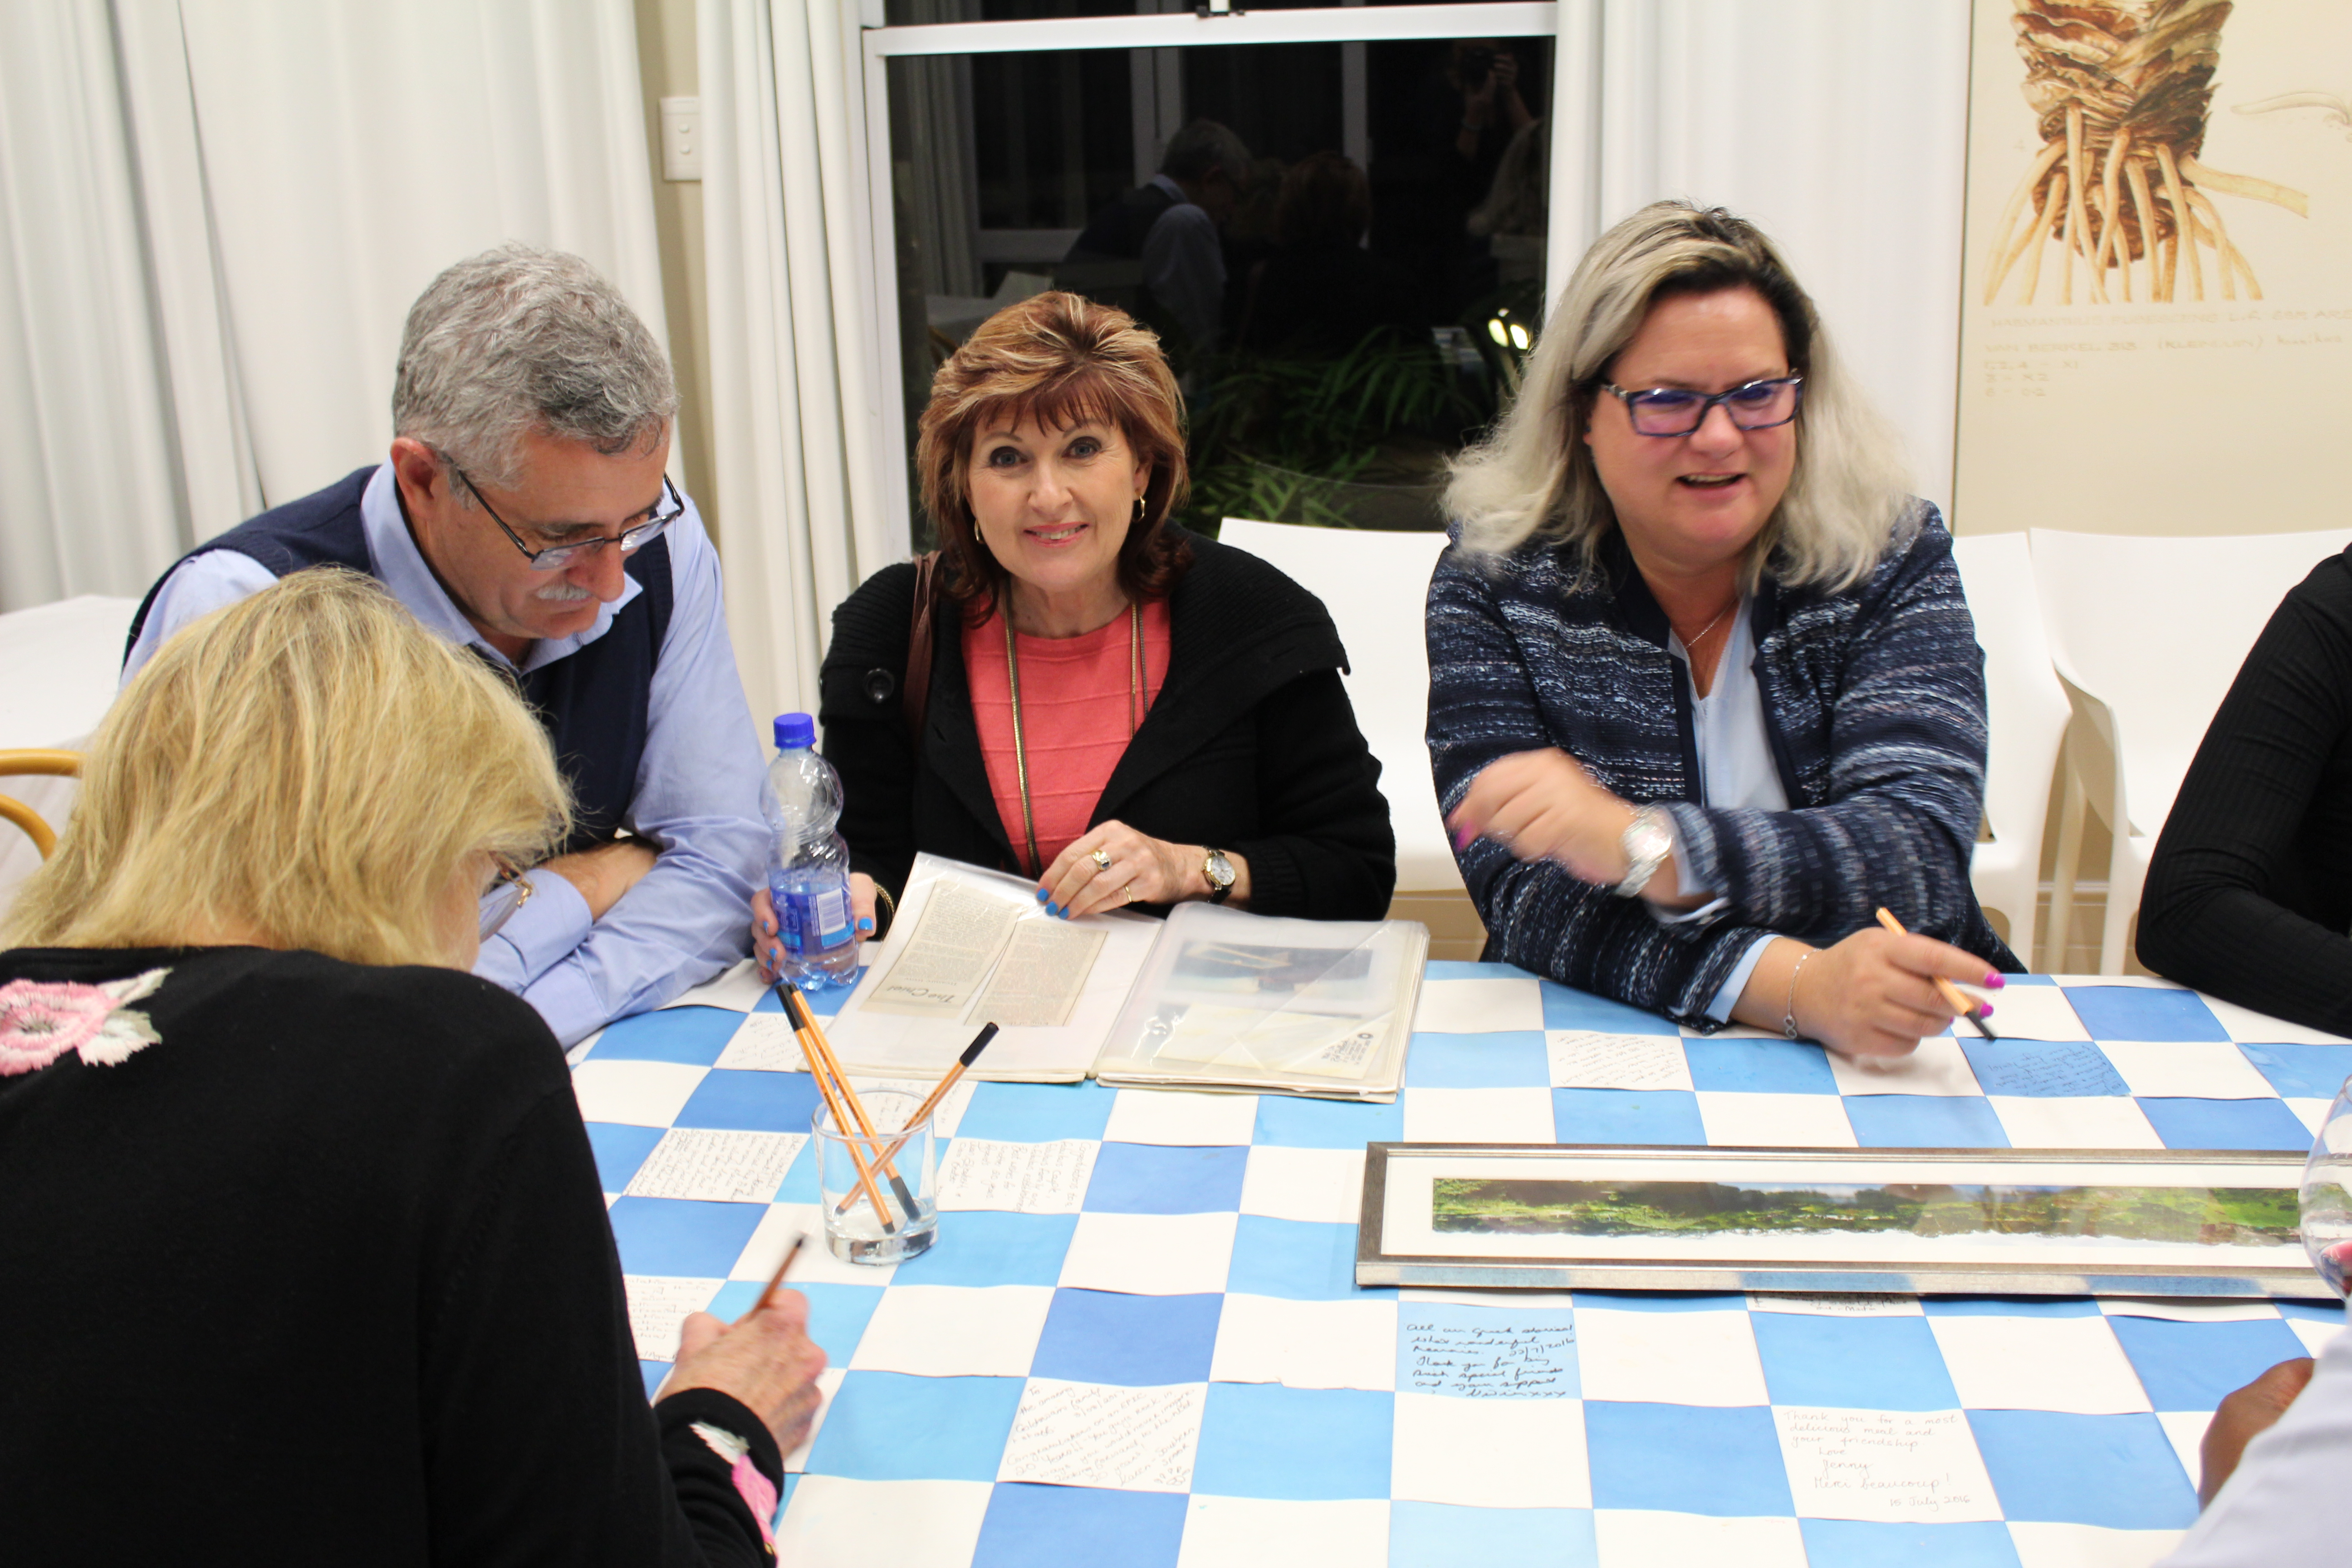 Guests signing the handmade paper tablecloth to commemorate the 20th birthday of Quarry Lake Inn.